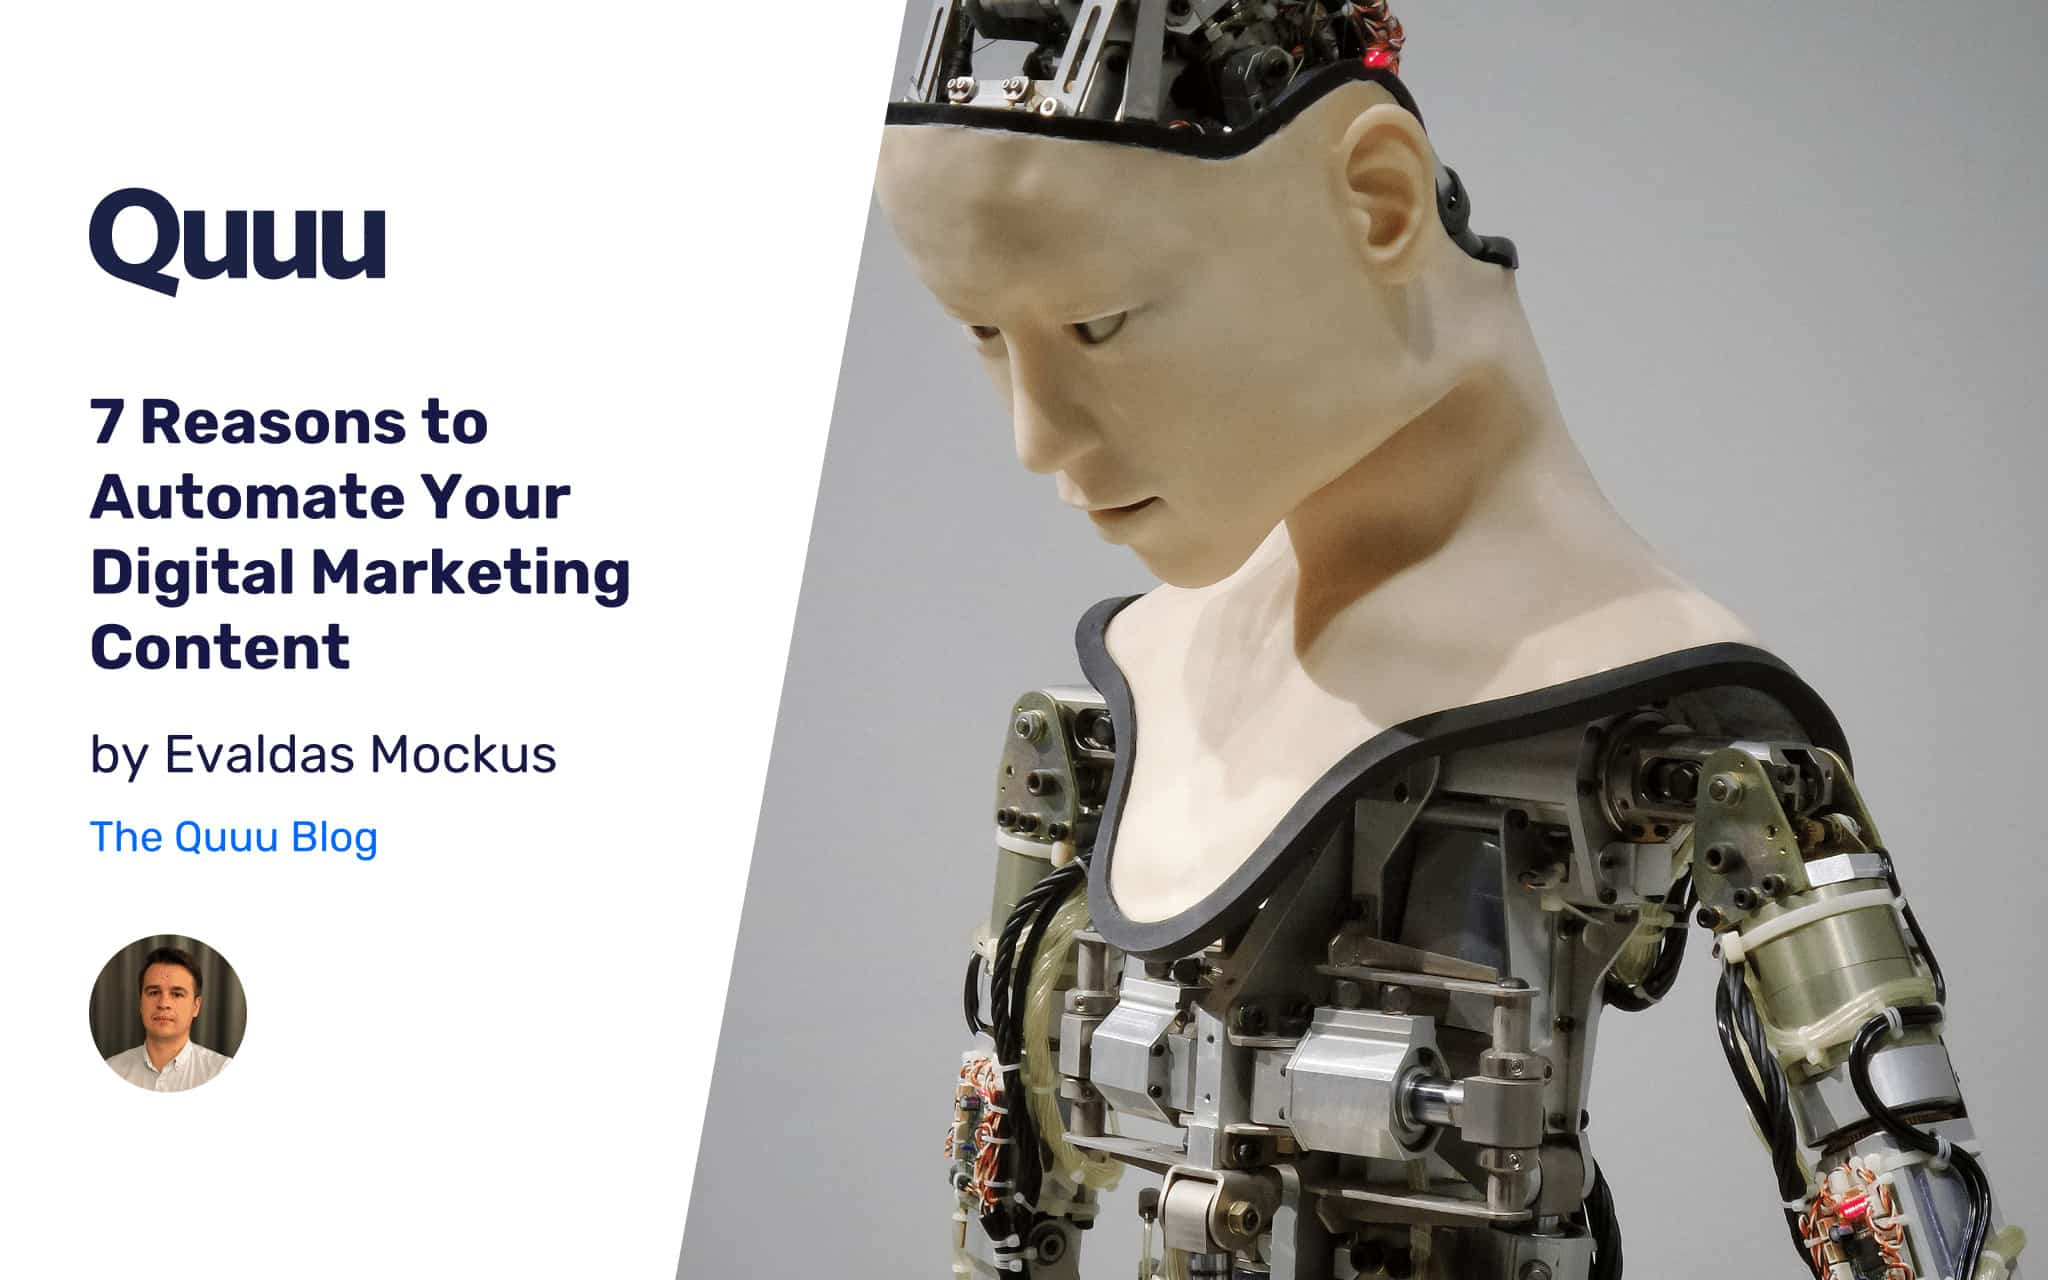 7 Reasons to Automate Your Digital Marketing Content